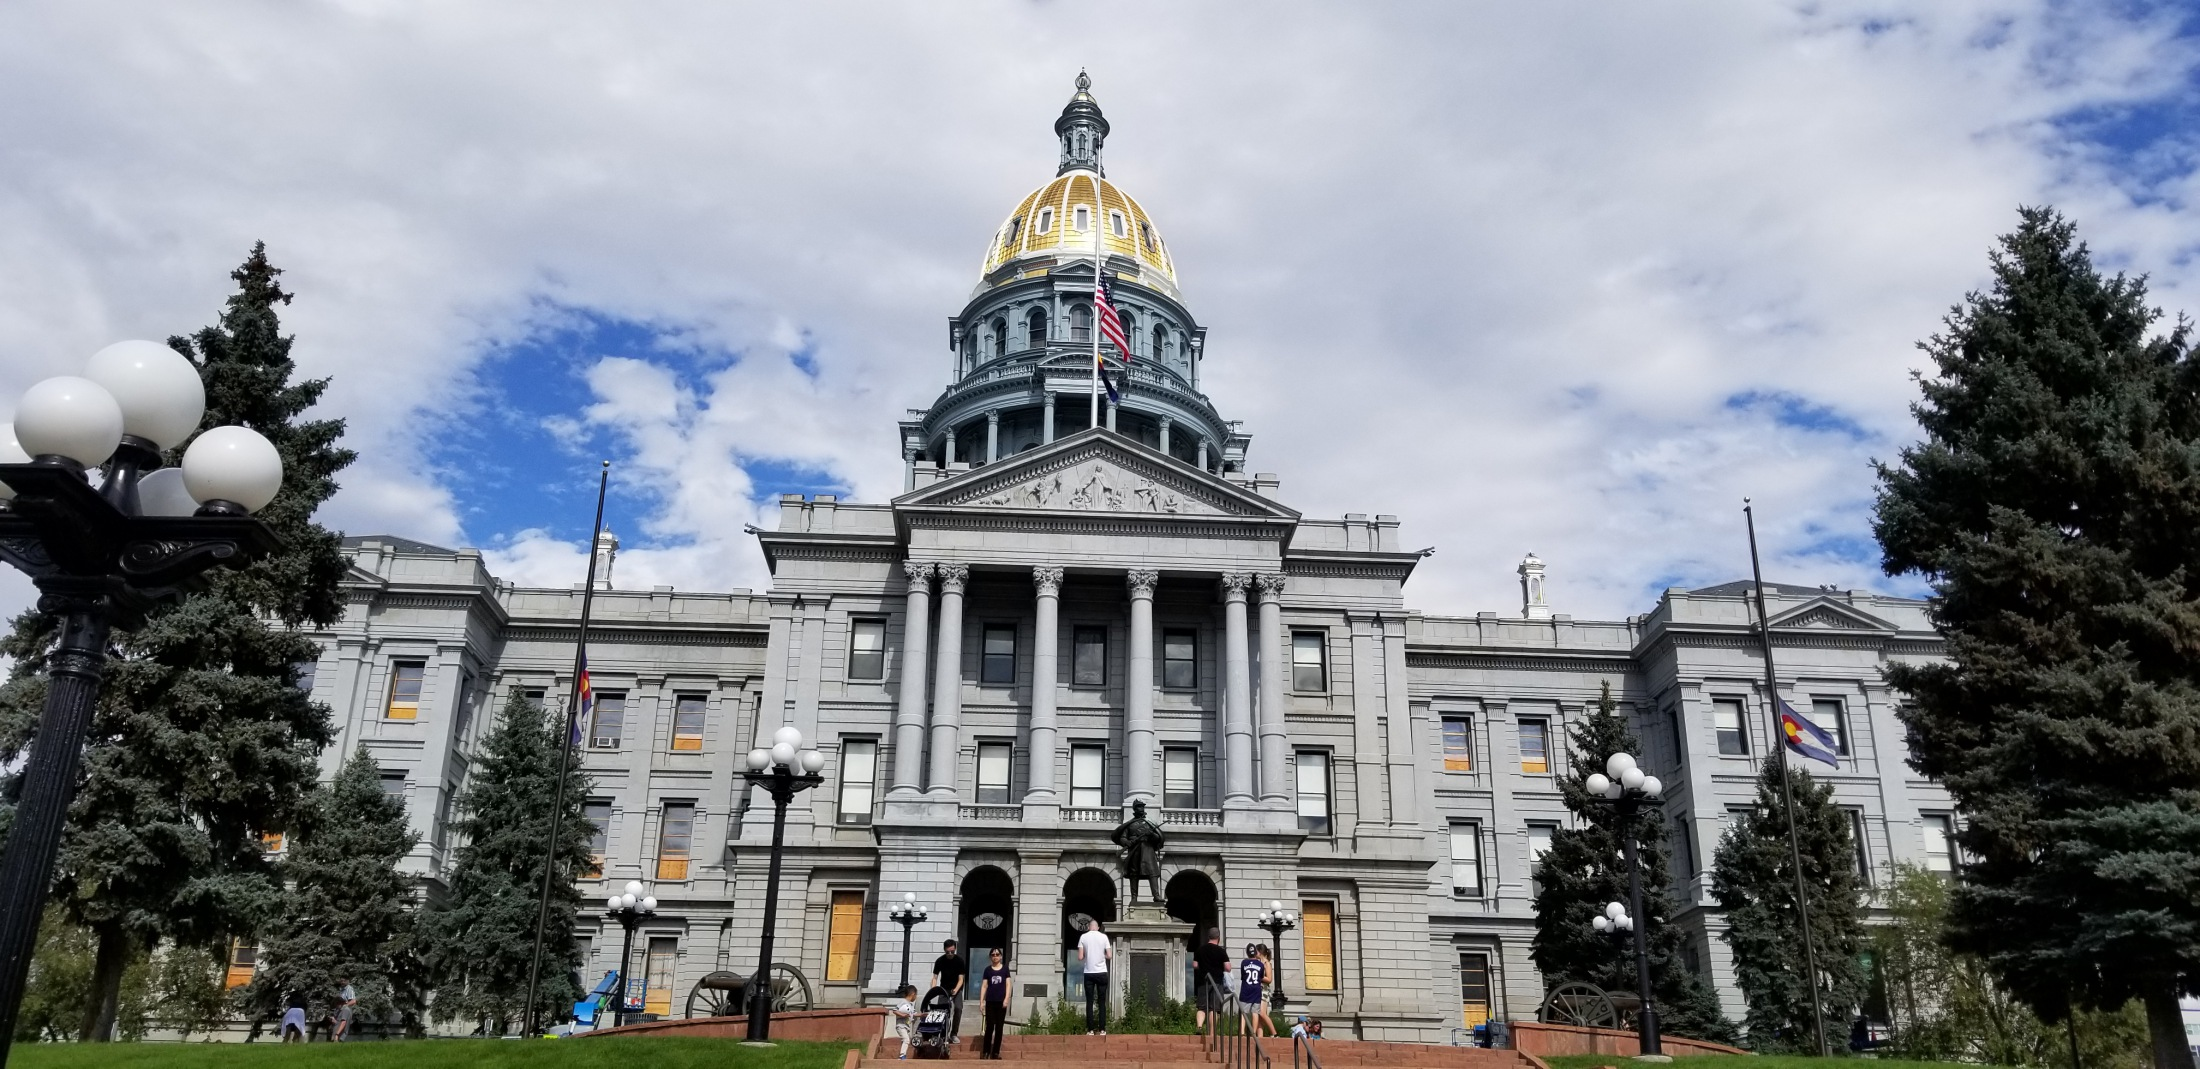 The Colorado State Capitol building with its gold dome glistening under a partly cloudy blue Colorado sky.